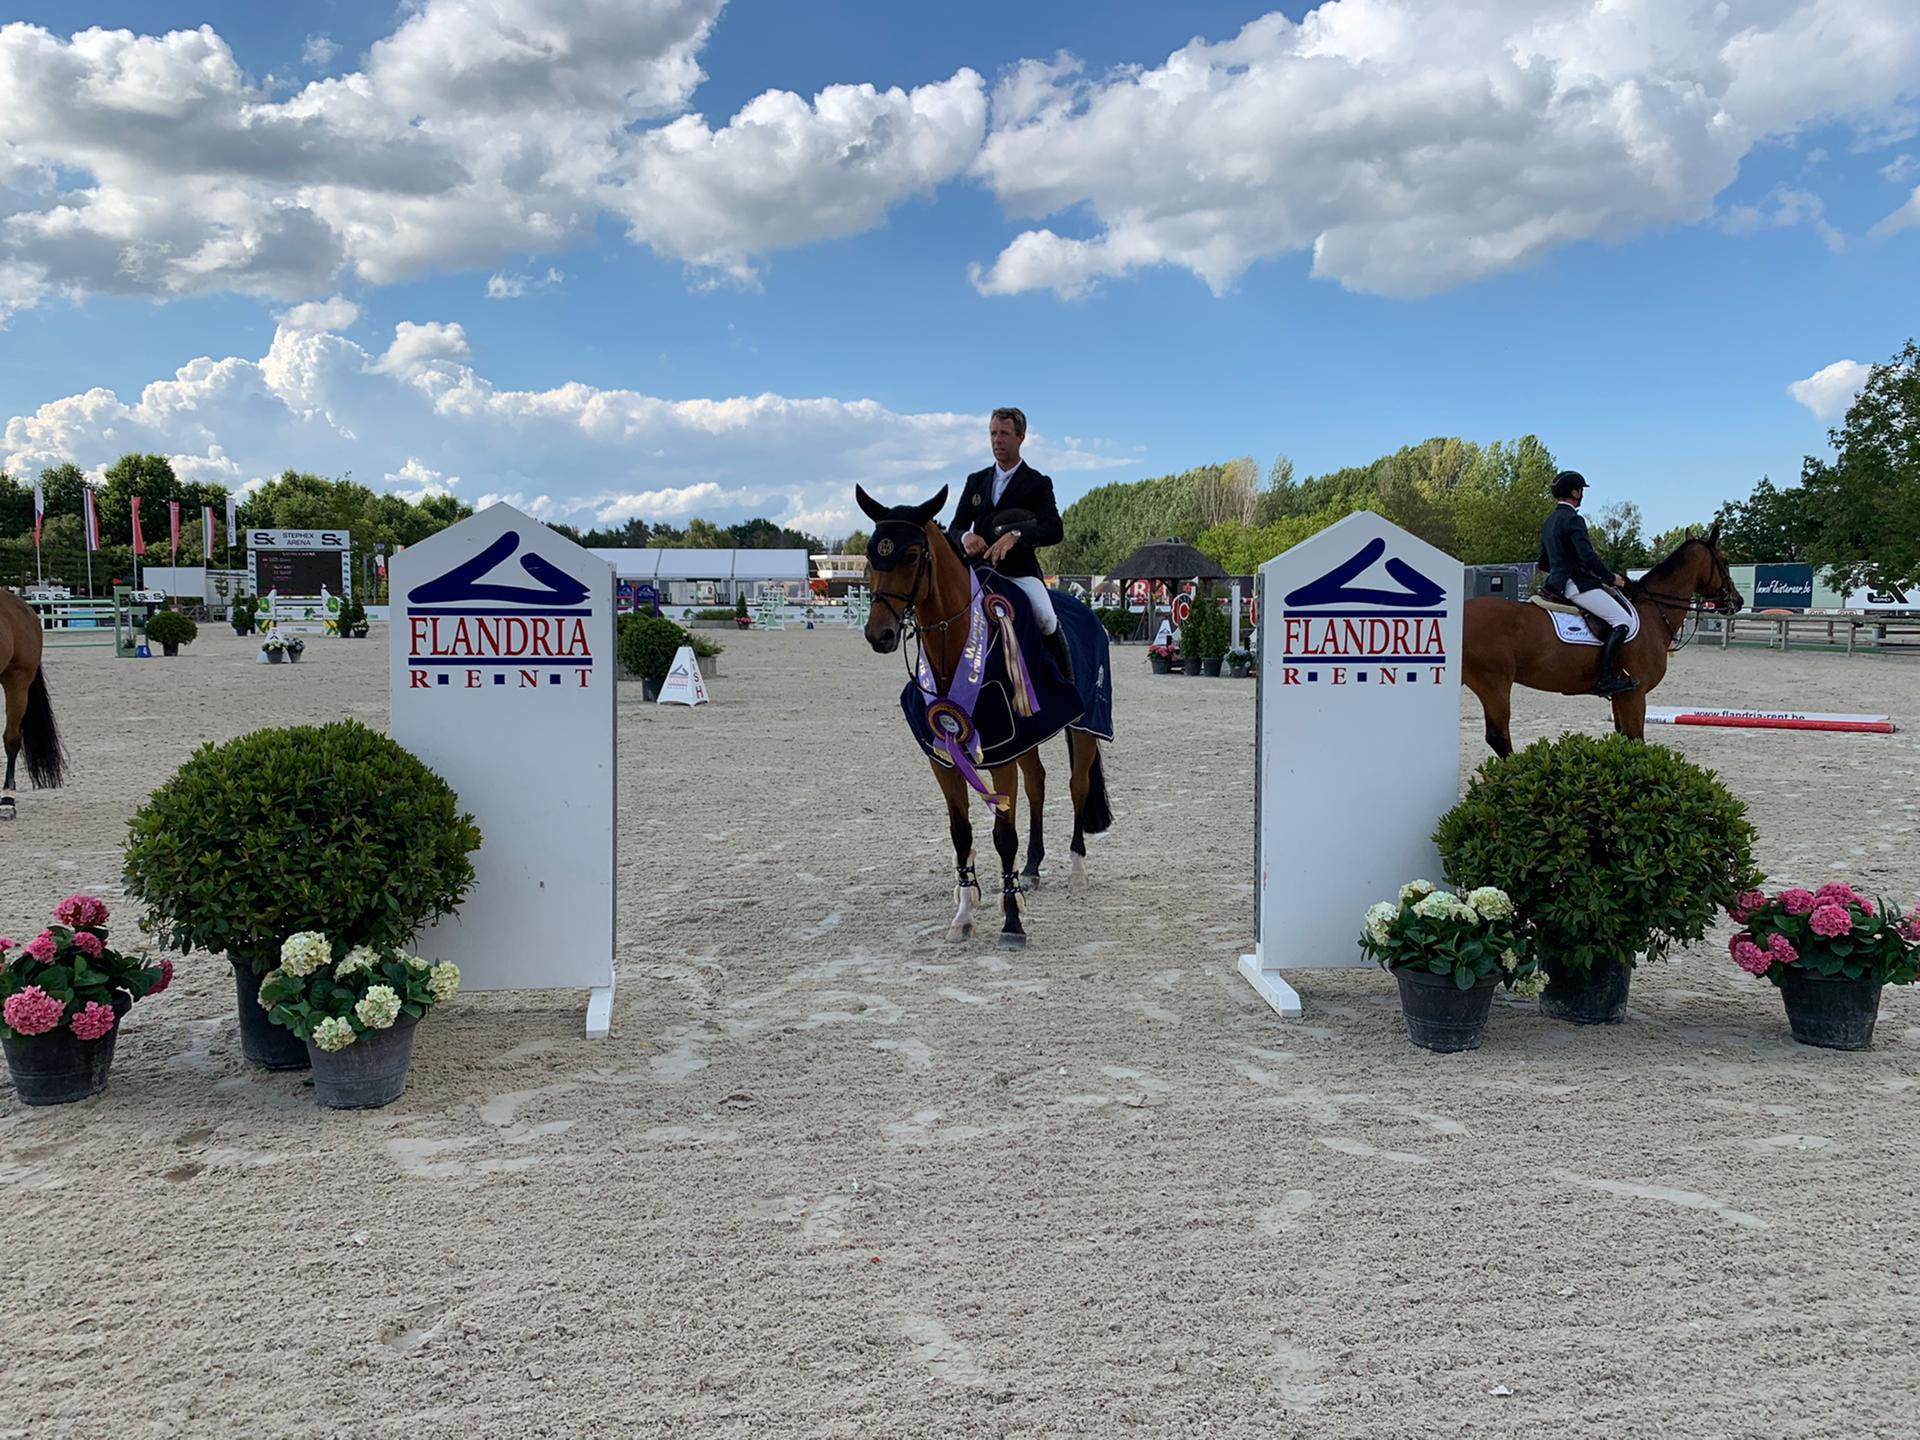 Maikel van der Vleuten unbeatable in CSI3* Grand Prix of Lier